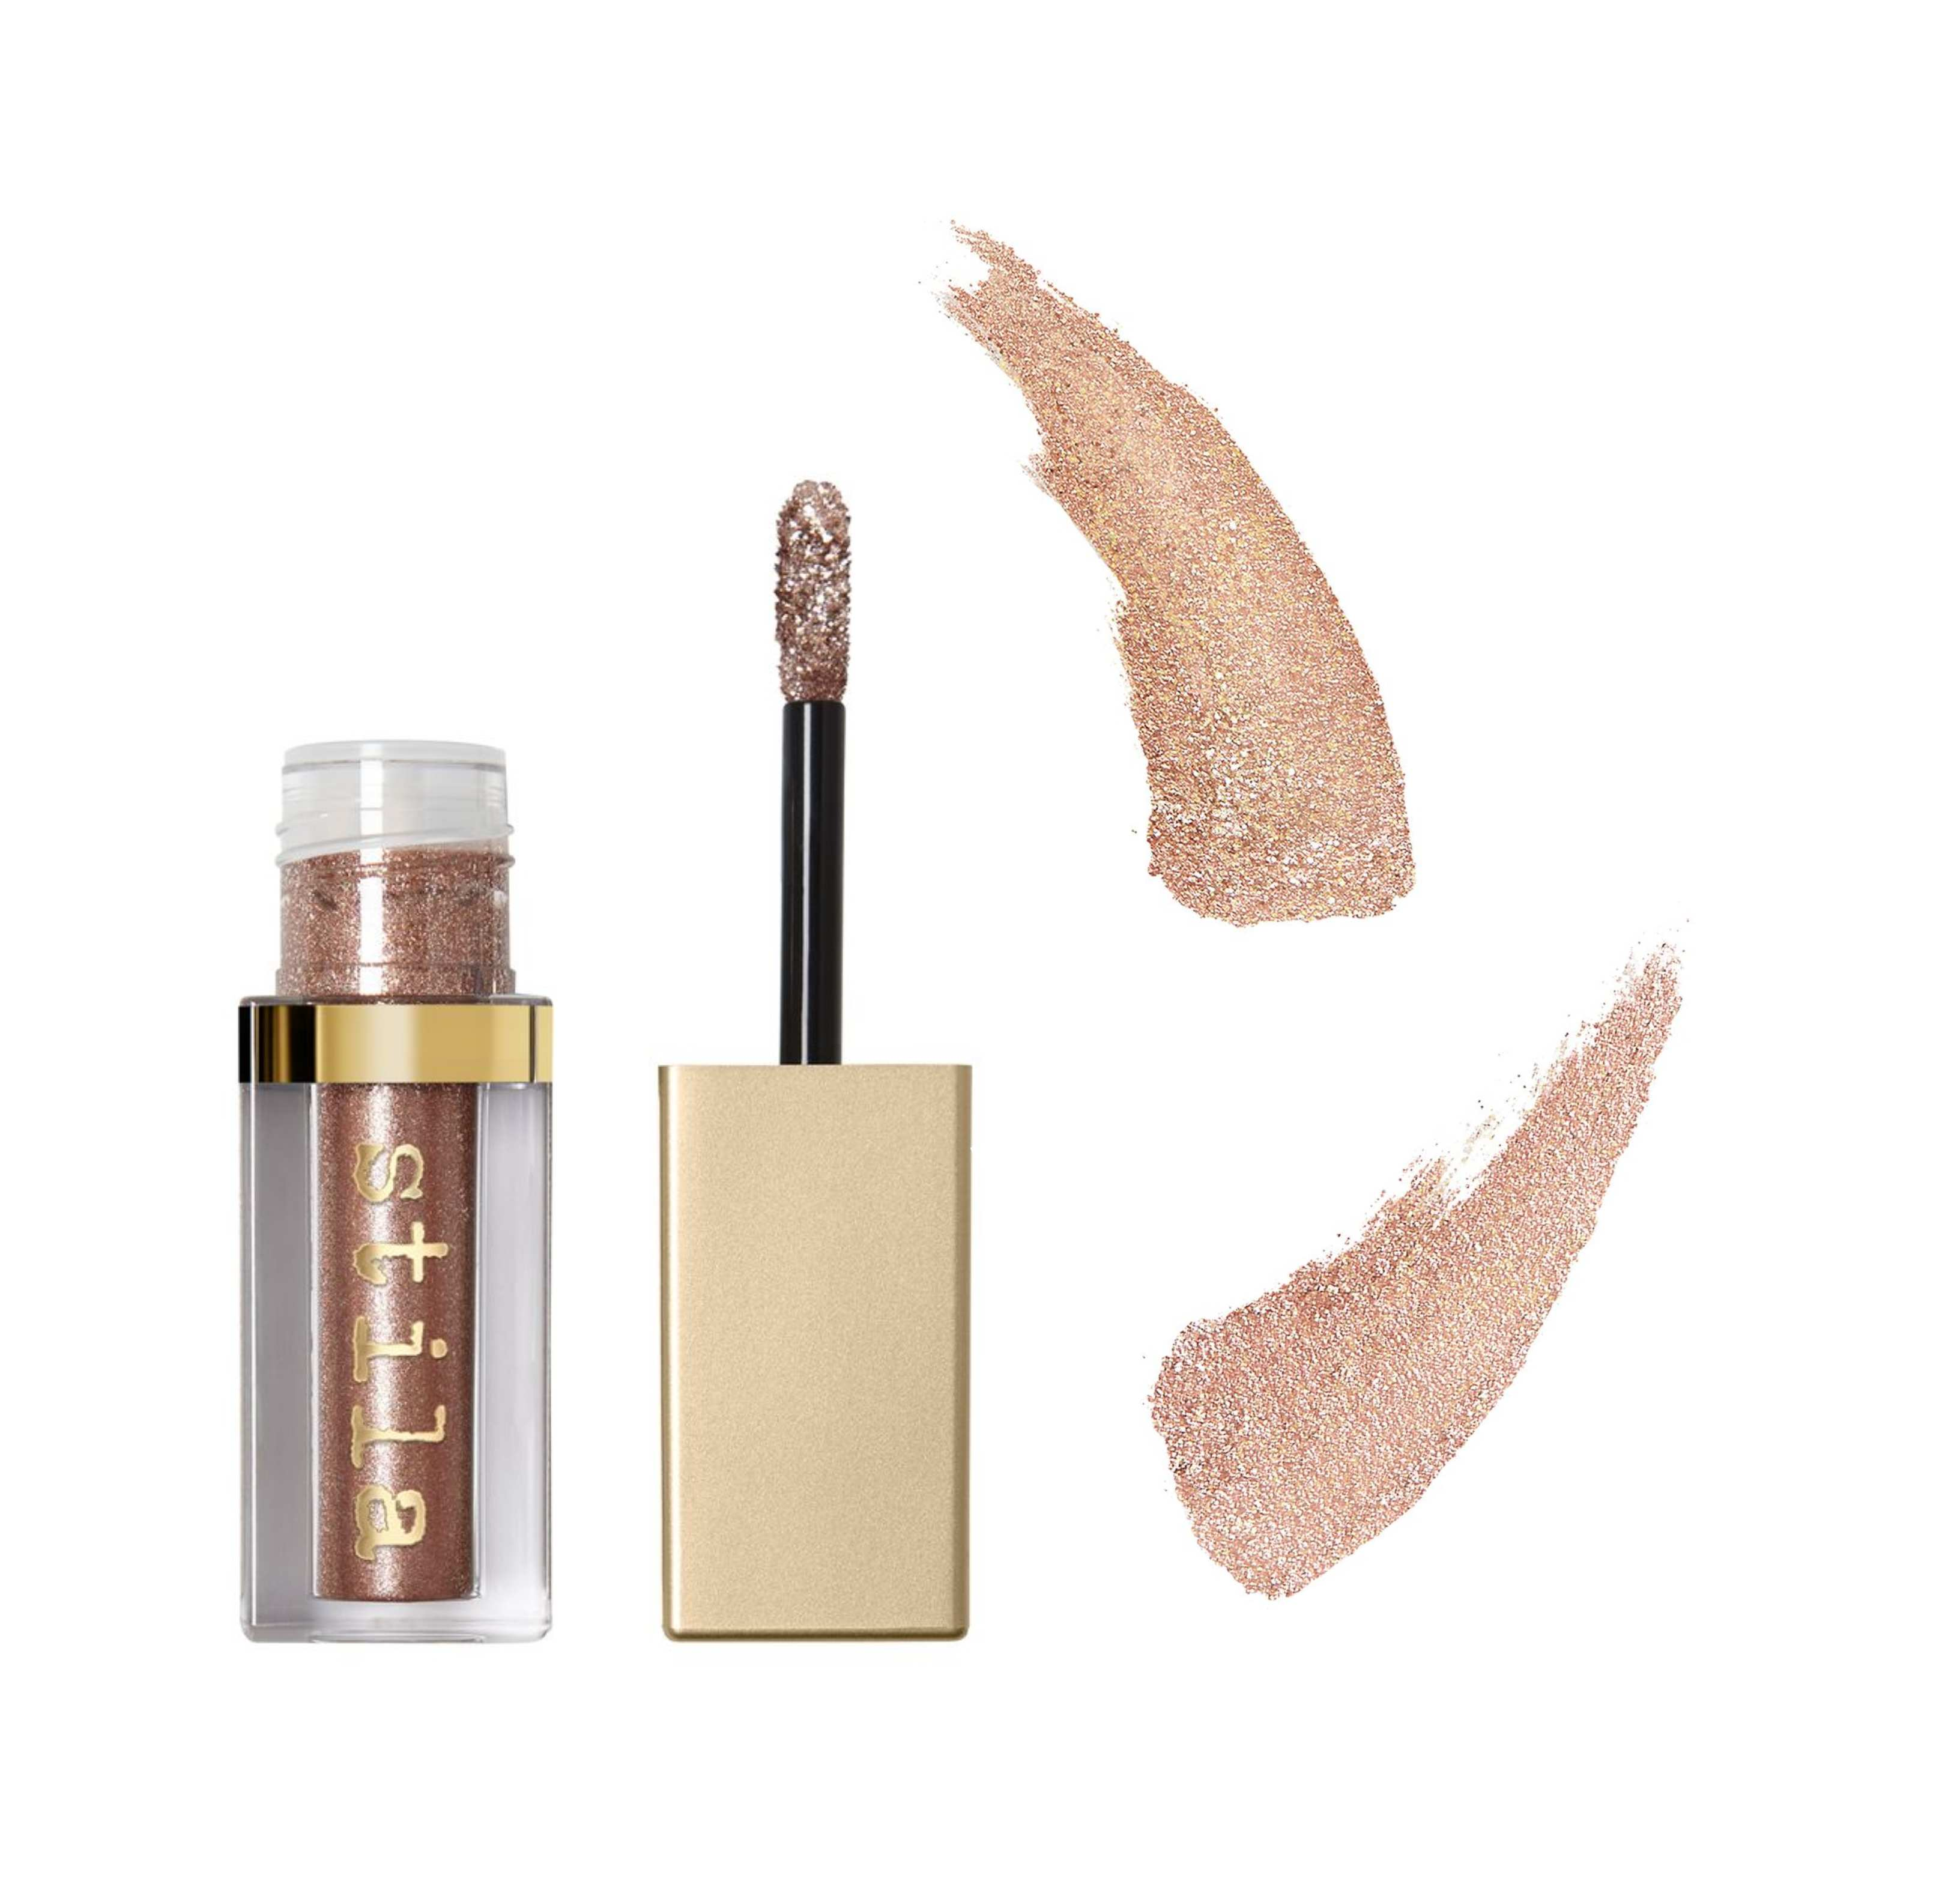 fc9e8f1eb6eb1 If you can't wear glitter in the festive season then when can you? For a  fuss-free, no-glitter-glue-needed sparkle, apply the Stila Magnificent  Metals ...